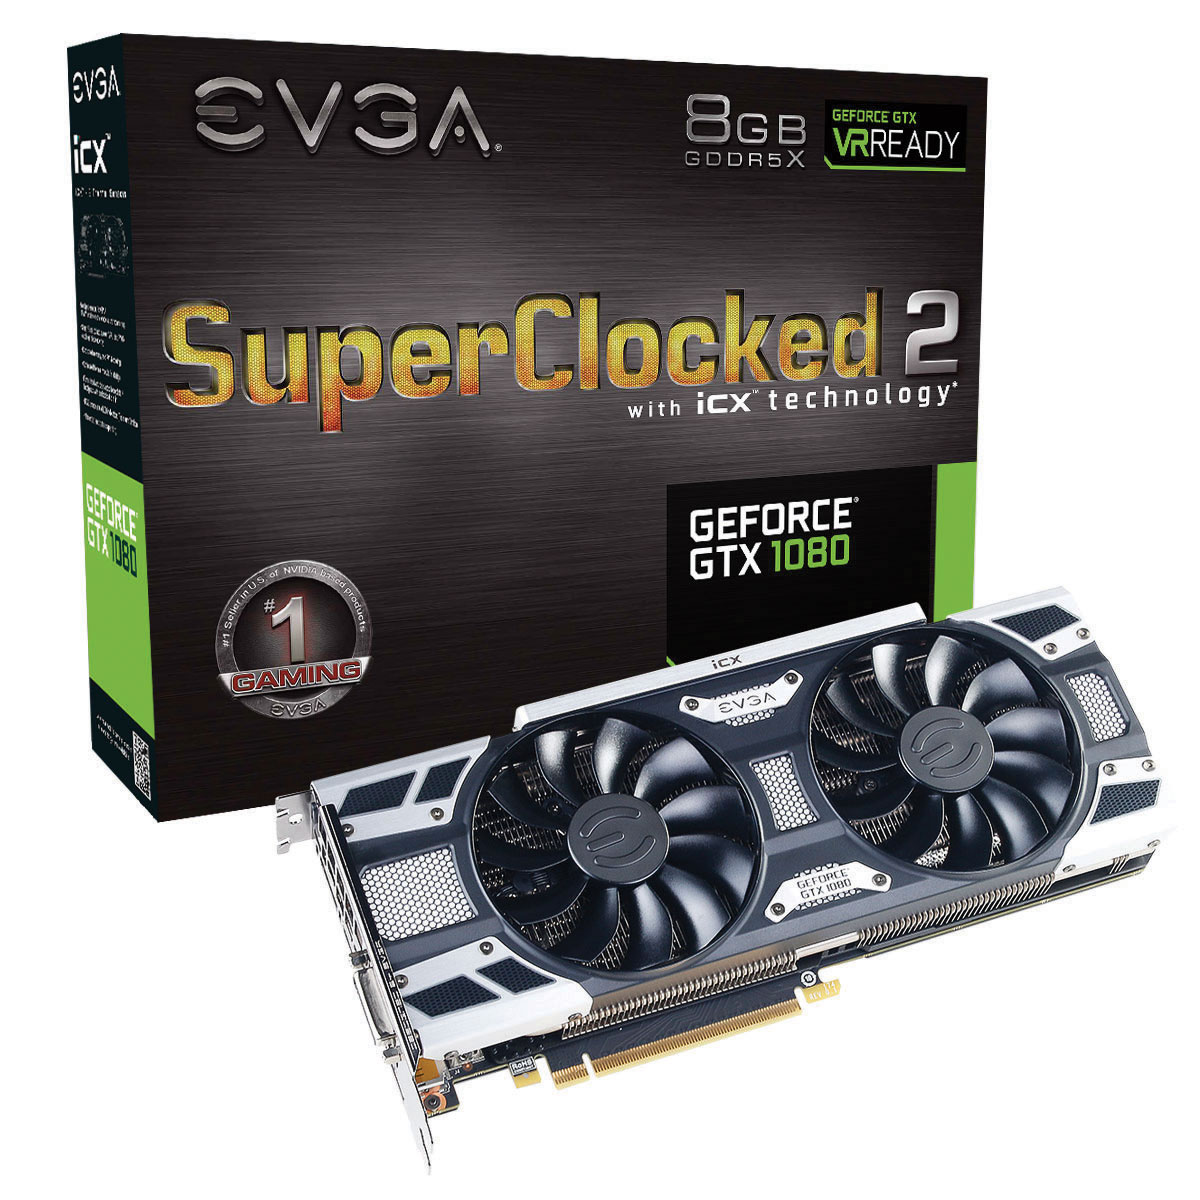 5 EVGA GeForce GTX1080 SC2 Gaming